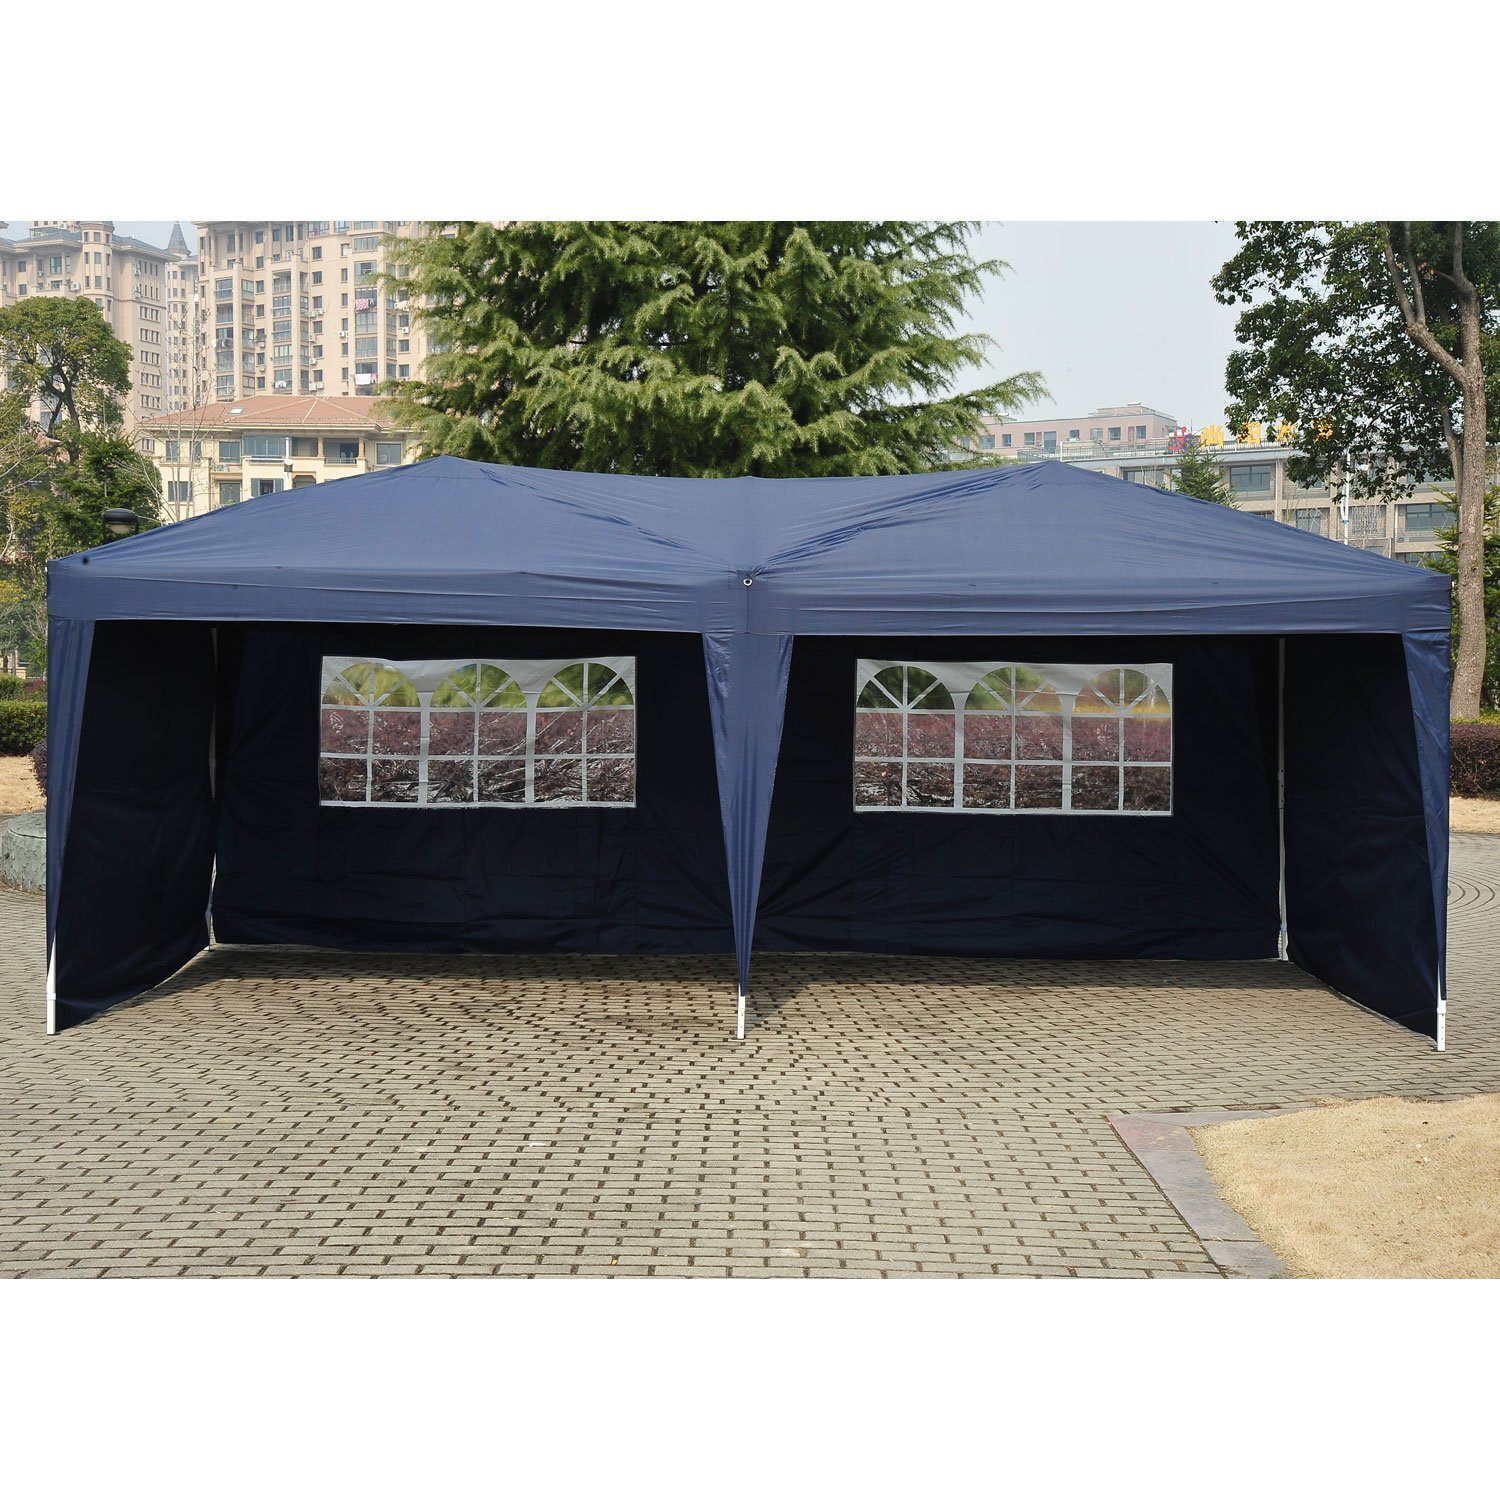 Amazon.com  Outsunny 10u0027 x 20u0027 Easy Pop Up Canopy Party Tent - Navy Blue w/ 4 Removable Sidewalls  Garden u0026 Outdoor  sc 1 st  Amazon.com & Amazon.com : Outsunny 10u0027 x 20u0027 Easy Pop Up Canopy Party Tent ...